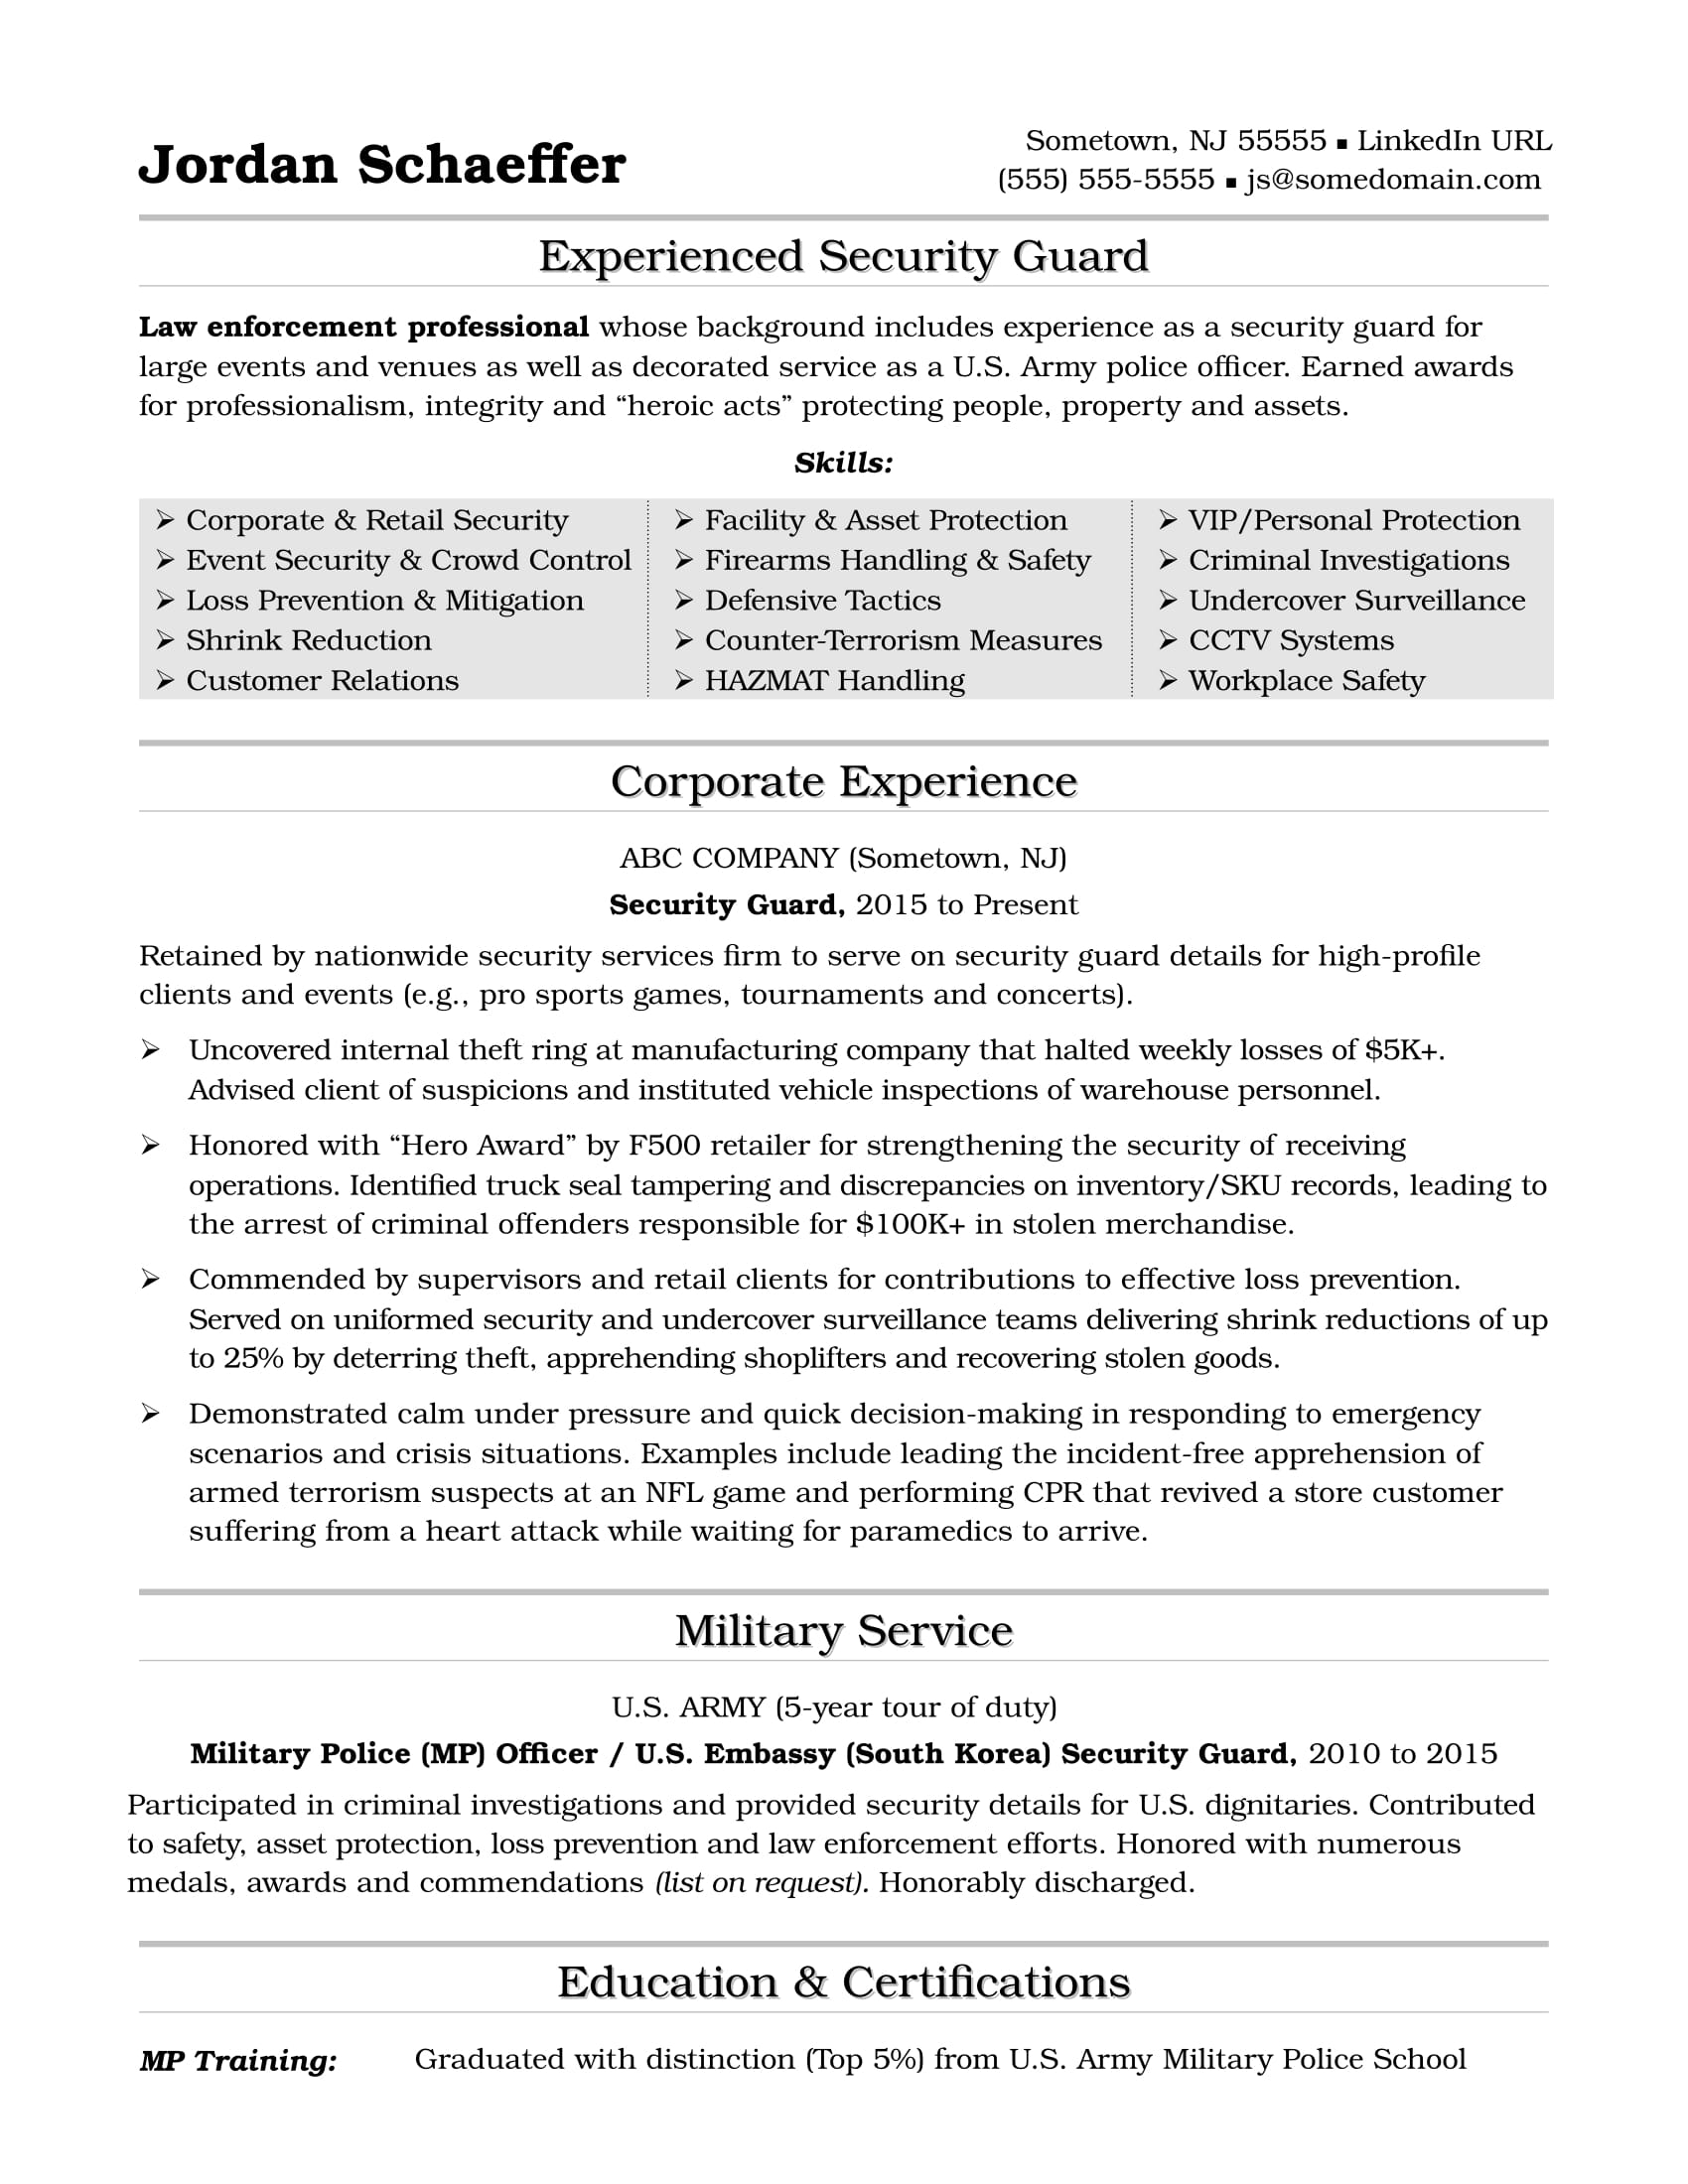 Security Guard Resume Sample  Entry Level Security Guard Resume Sample